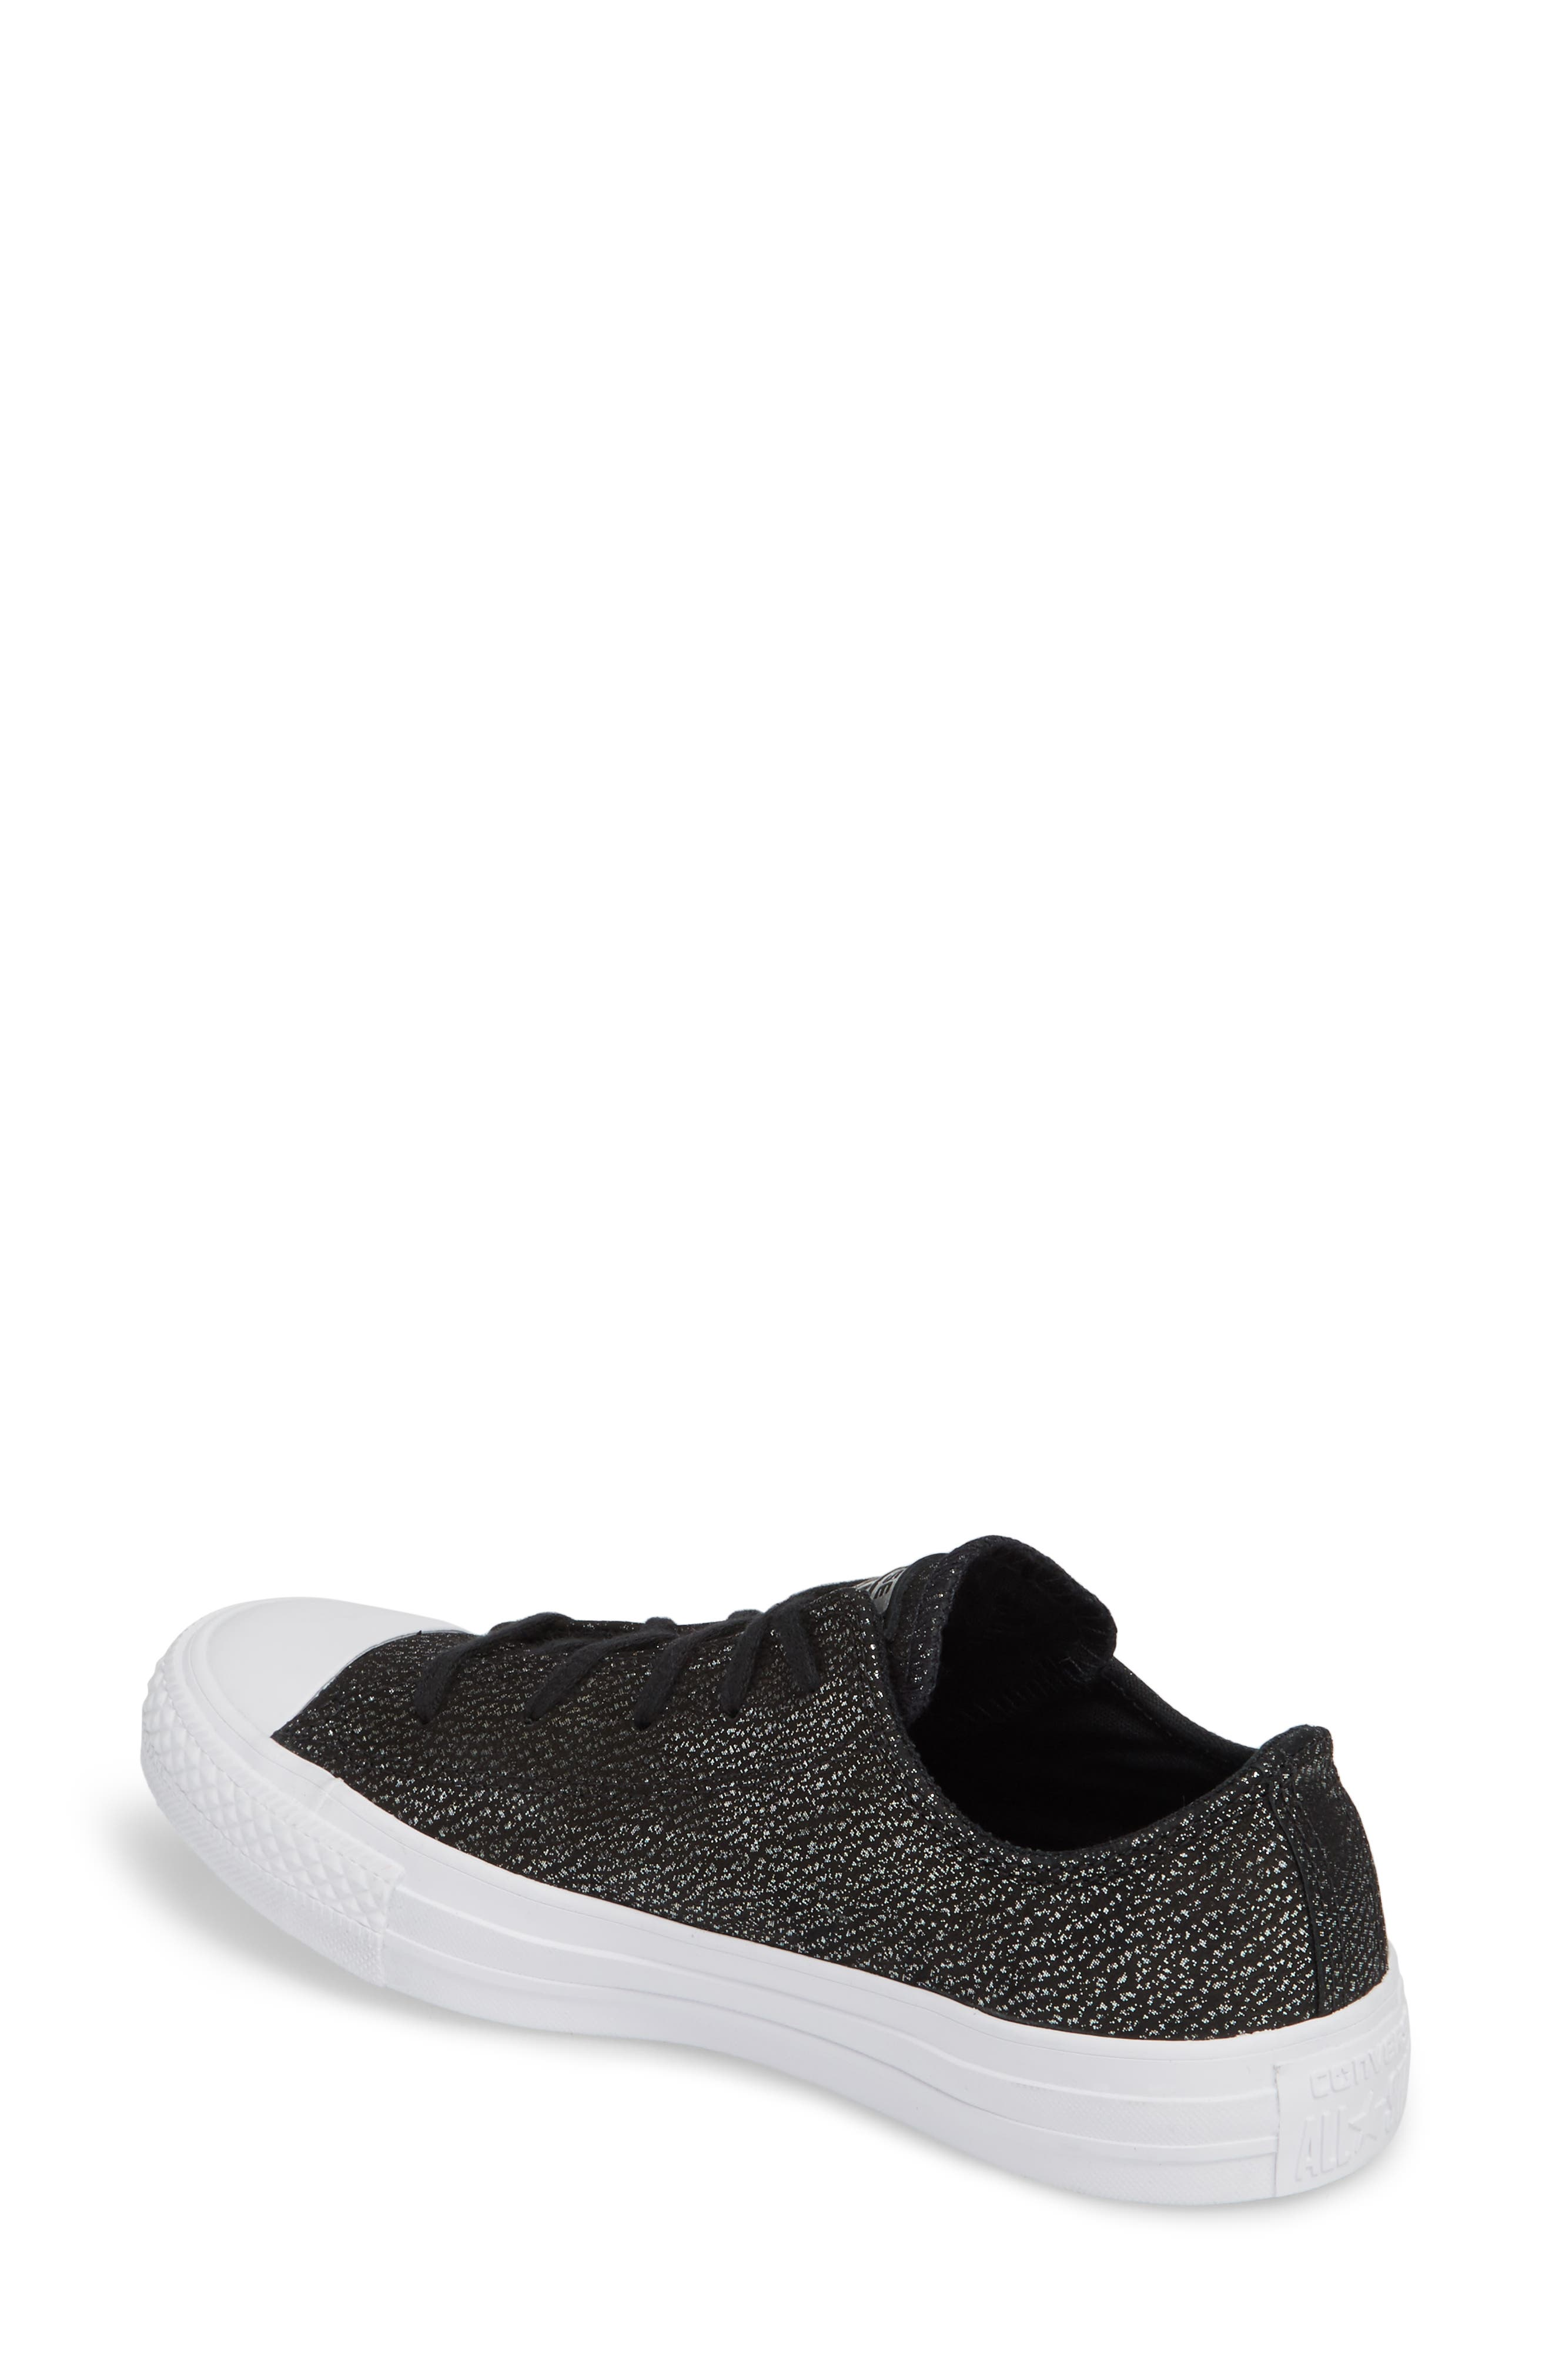 Chuck Taylor<sup>®</sup> All Star<sup>®</sup> Tipped Metallic Low Top Sneaker,                             Alternate thumbnail 2, color,                             001